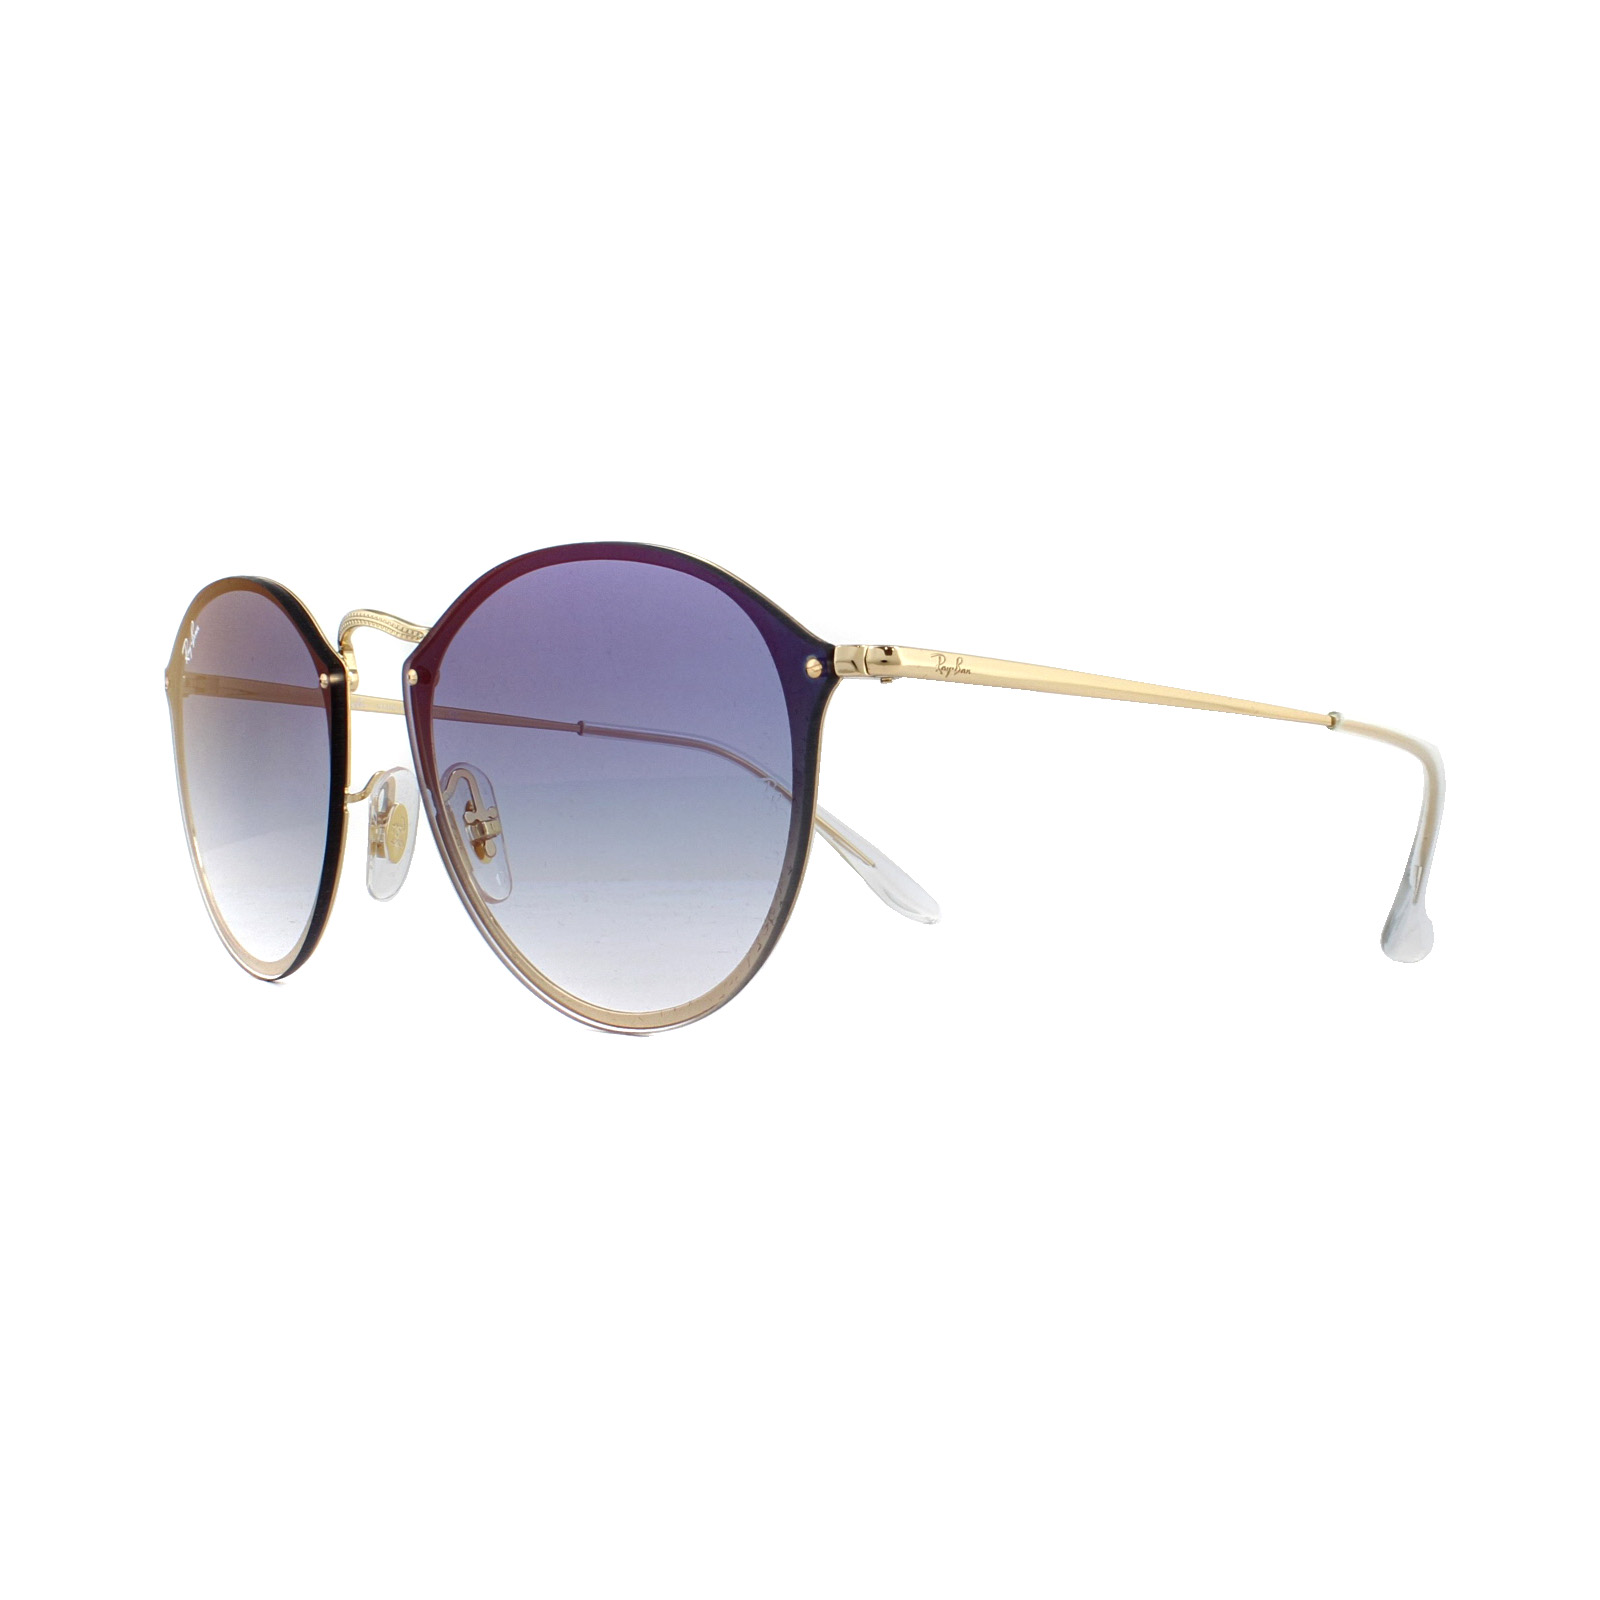 f49af31b8d Sentinel Ray-Ban Sunglasses Blaze Round RB3574N 001 X0 Gold Blue Gradient  Red Mirrored